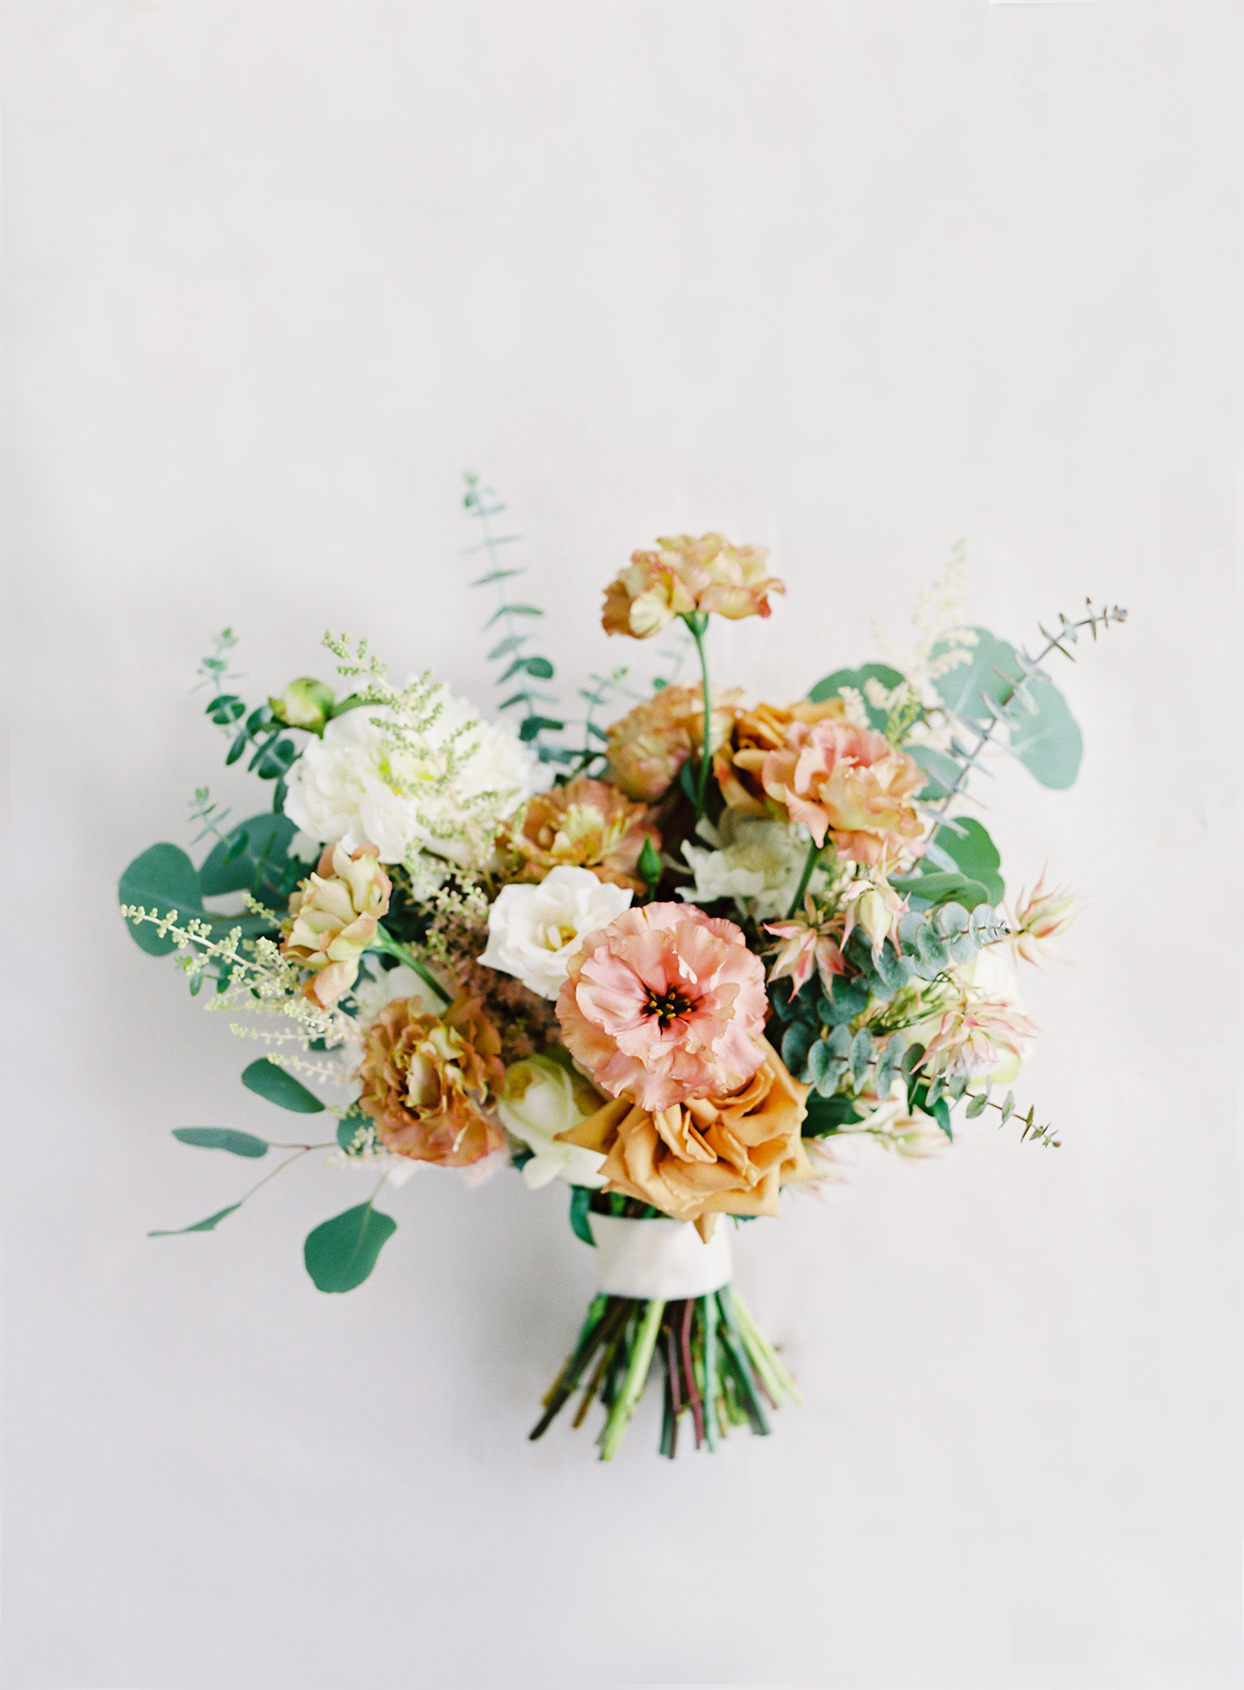 micaela curtis bride's wedding bouquet